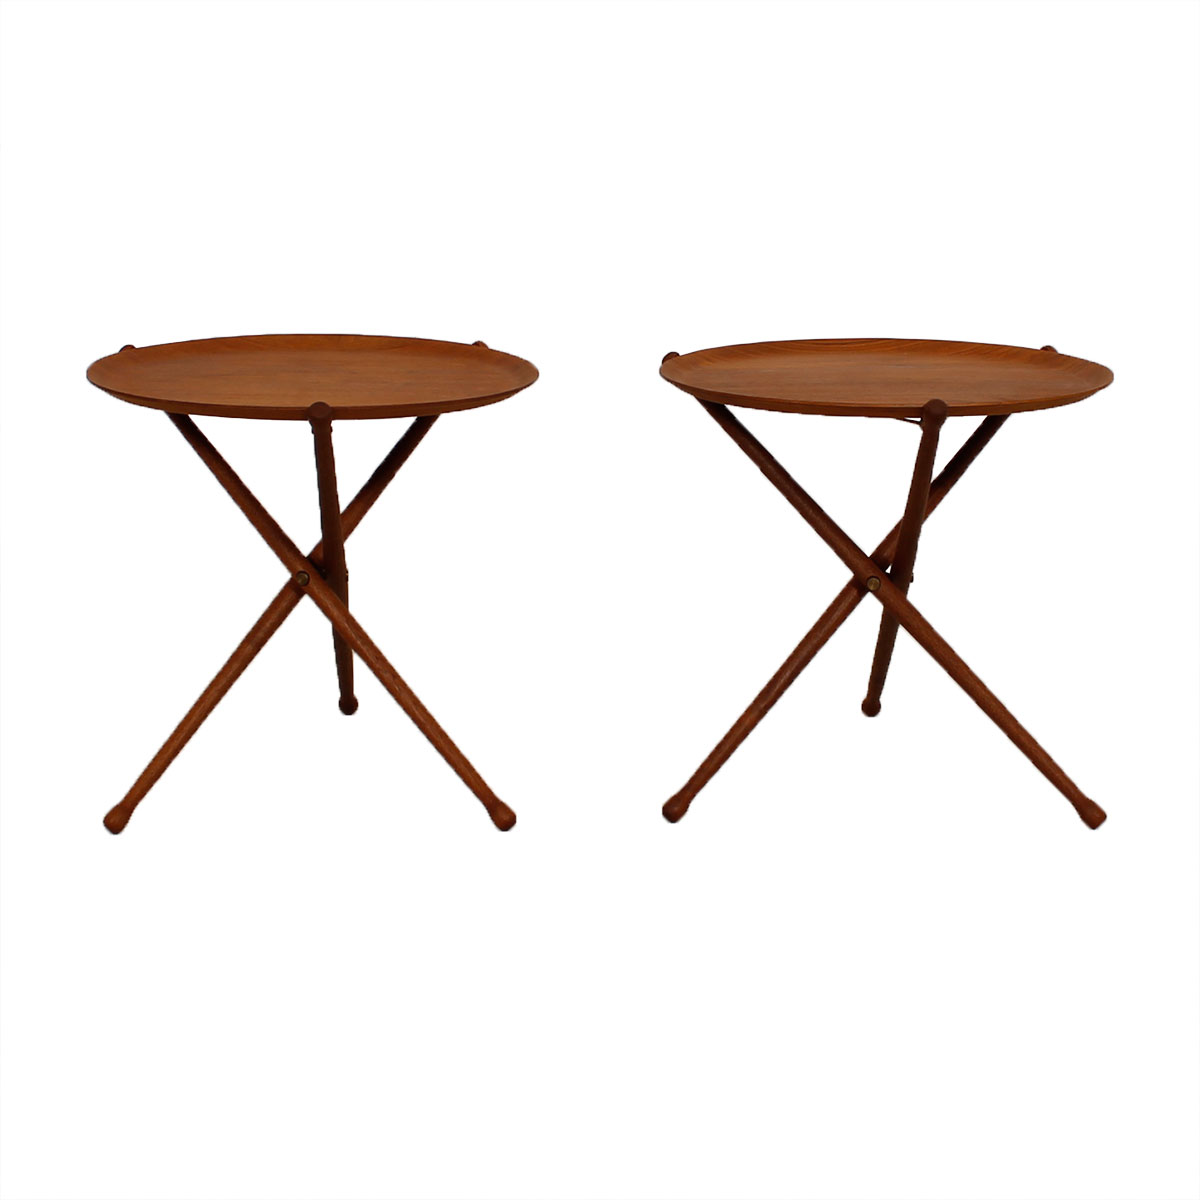 Rare Pair of Collapsible Tray Tables by Nils Trautner for Ary Nybro Sweden